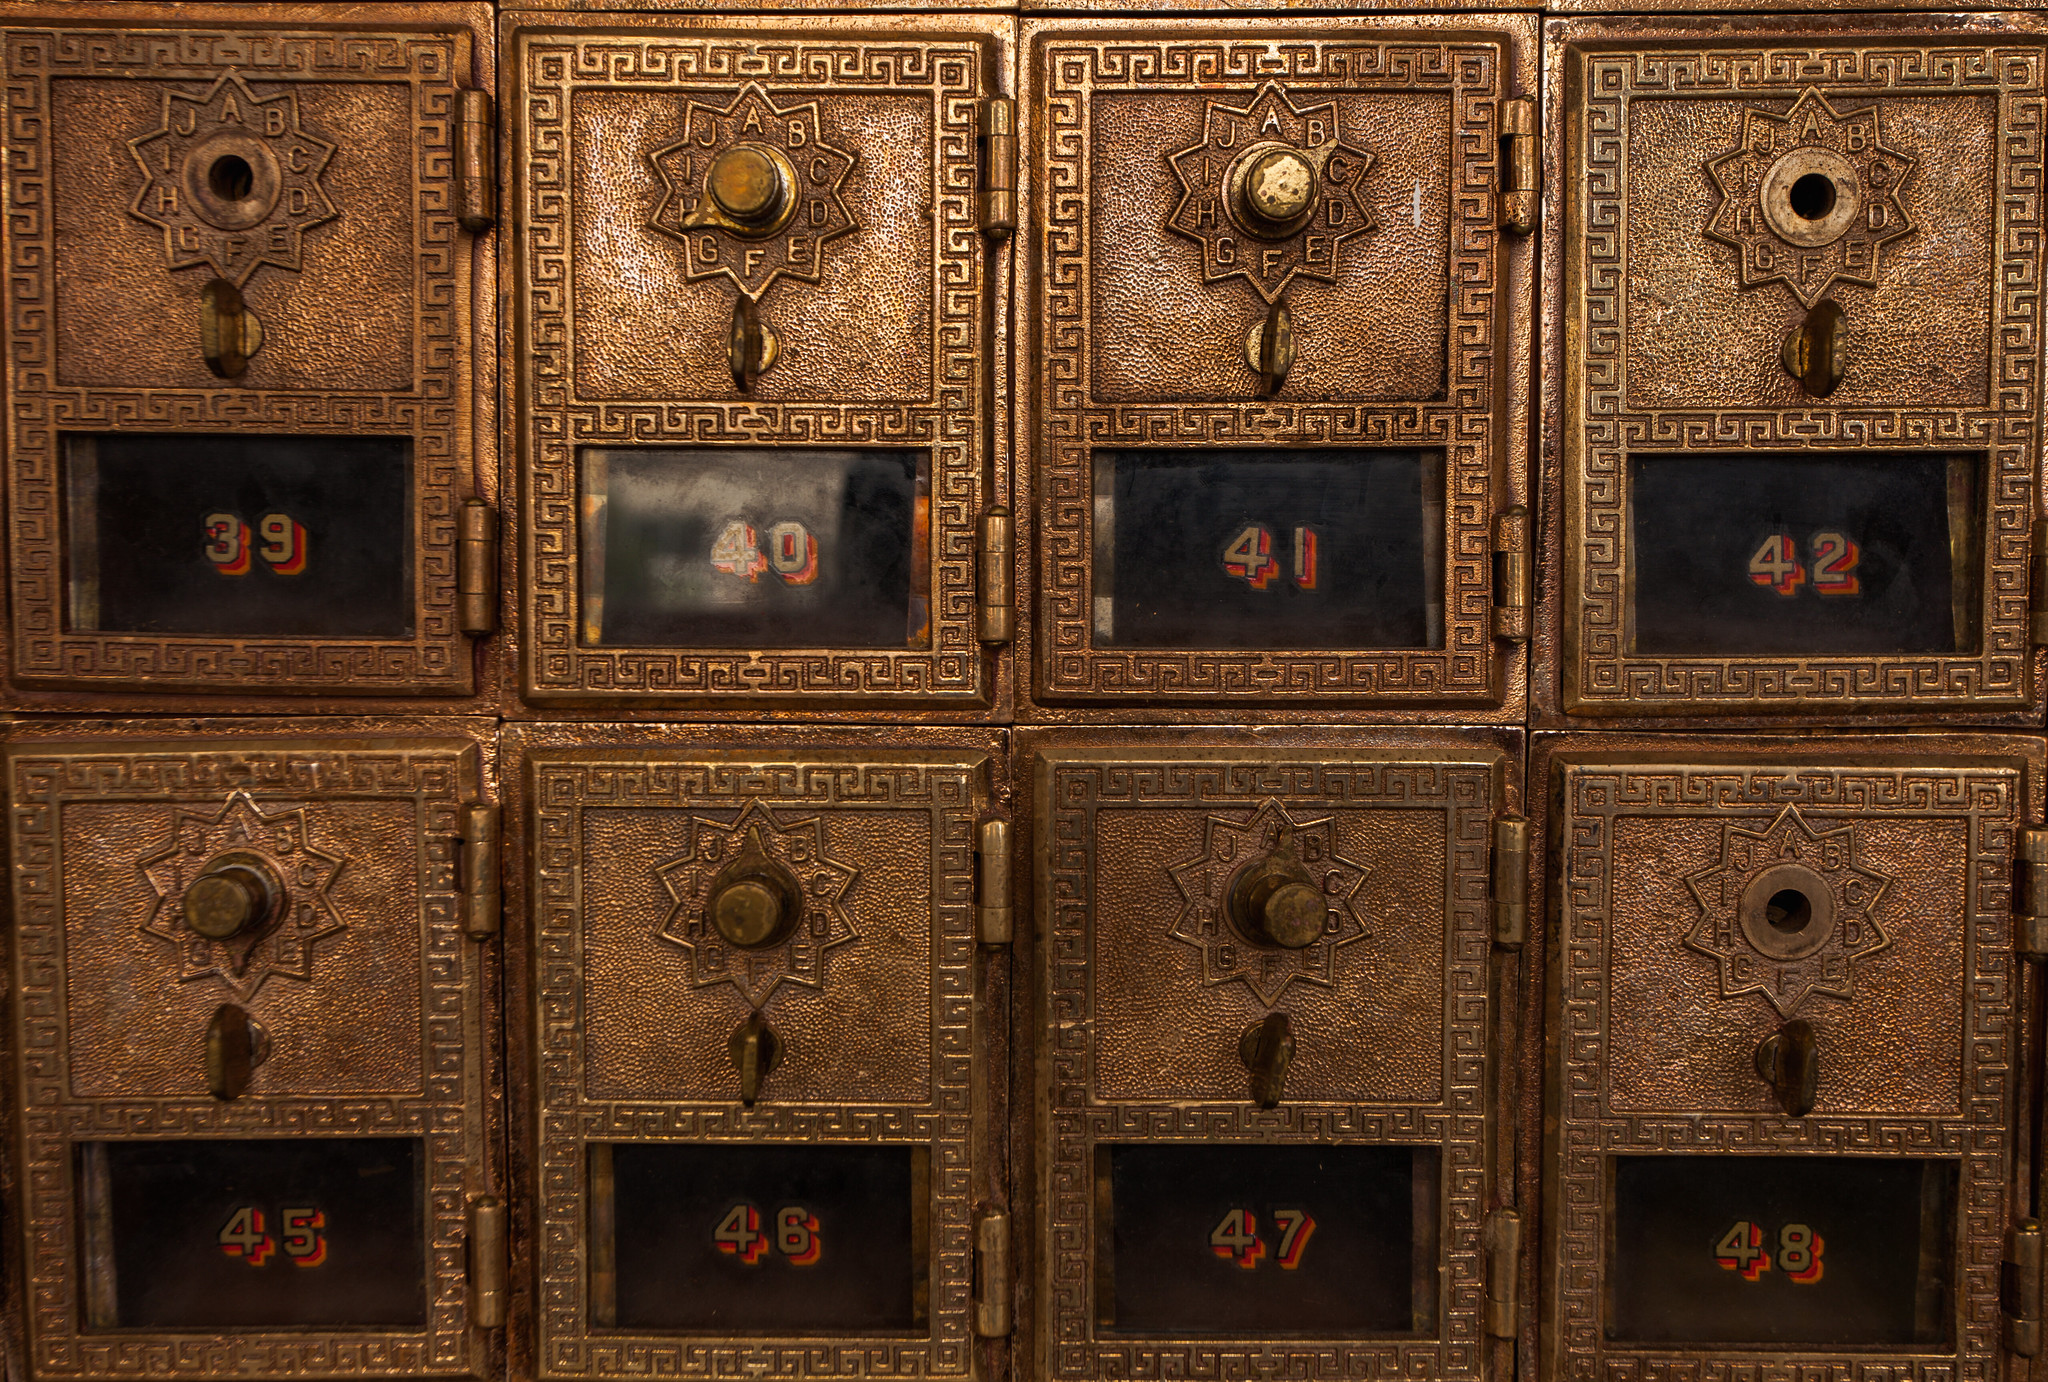 The original post office boxes remain inside of the building.